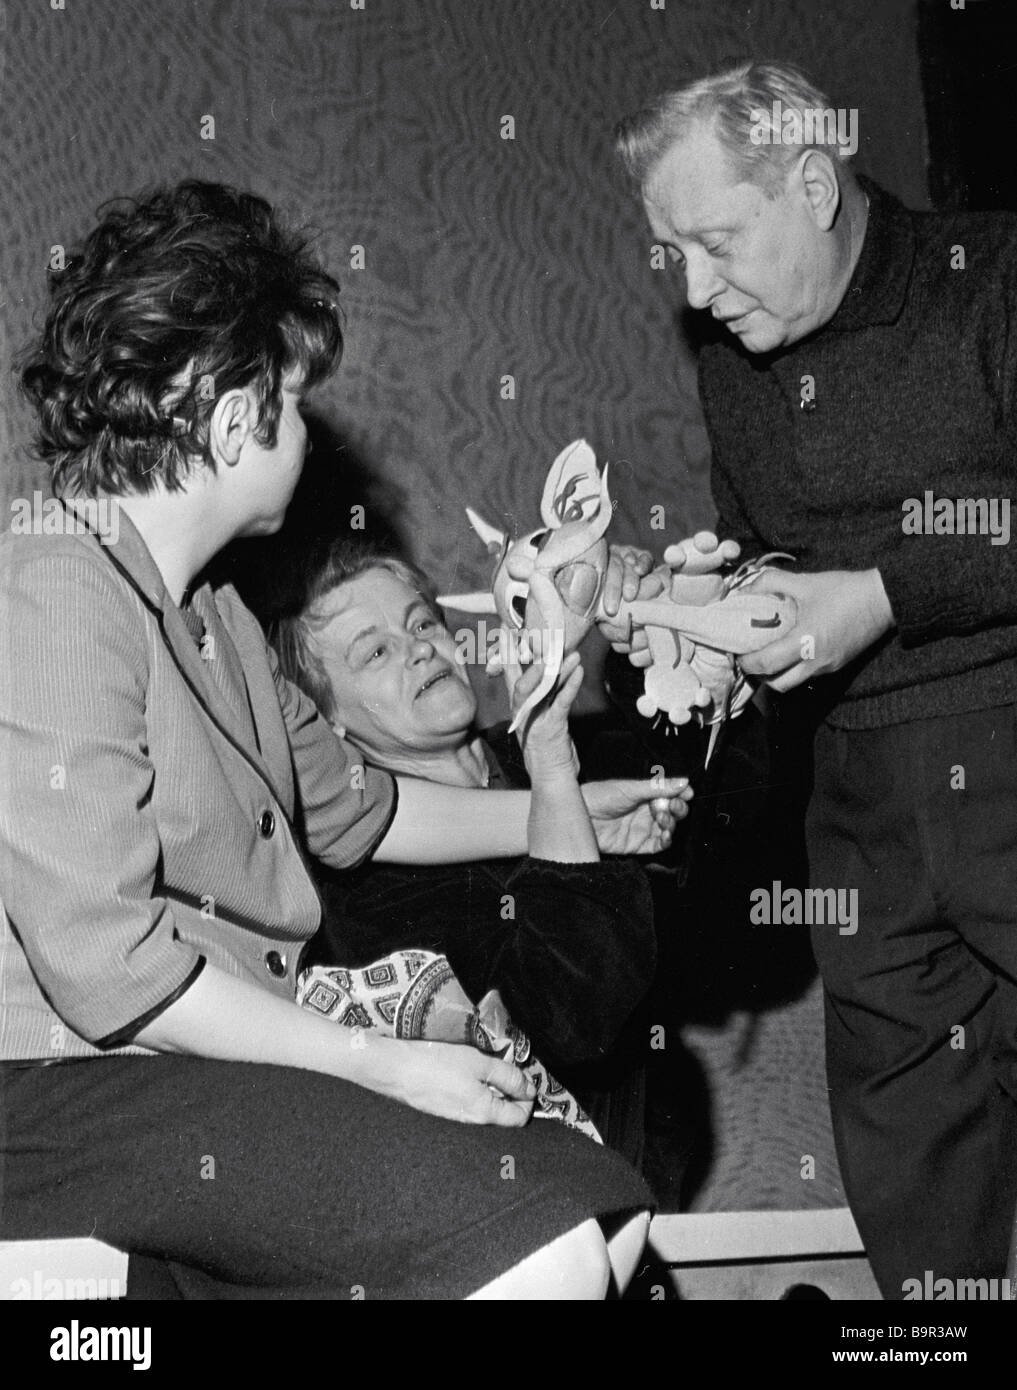 People s artist of the USSR Sergei Obraztsov right examining a puppet together with artists of the Moscow central - Stock Image